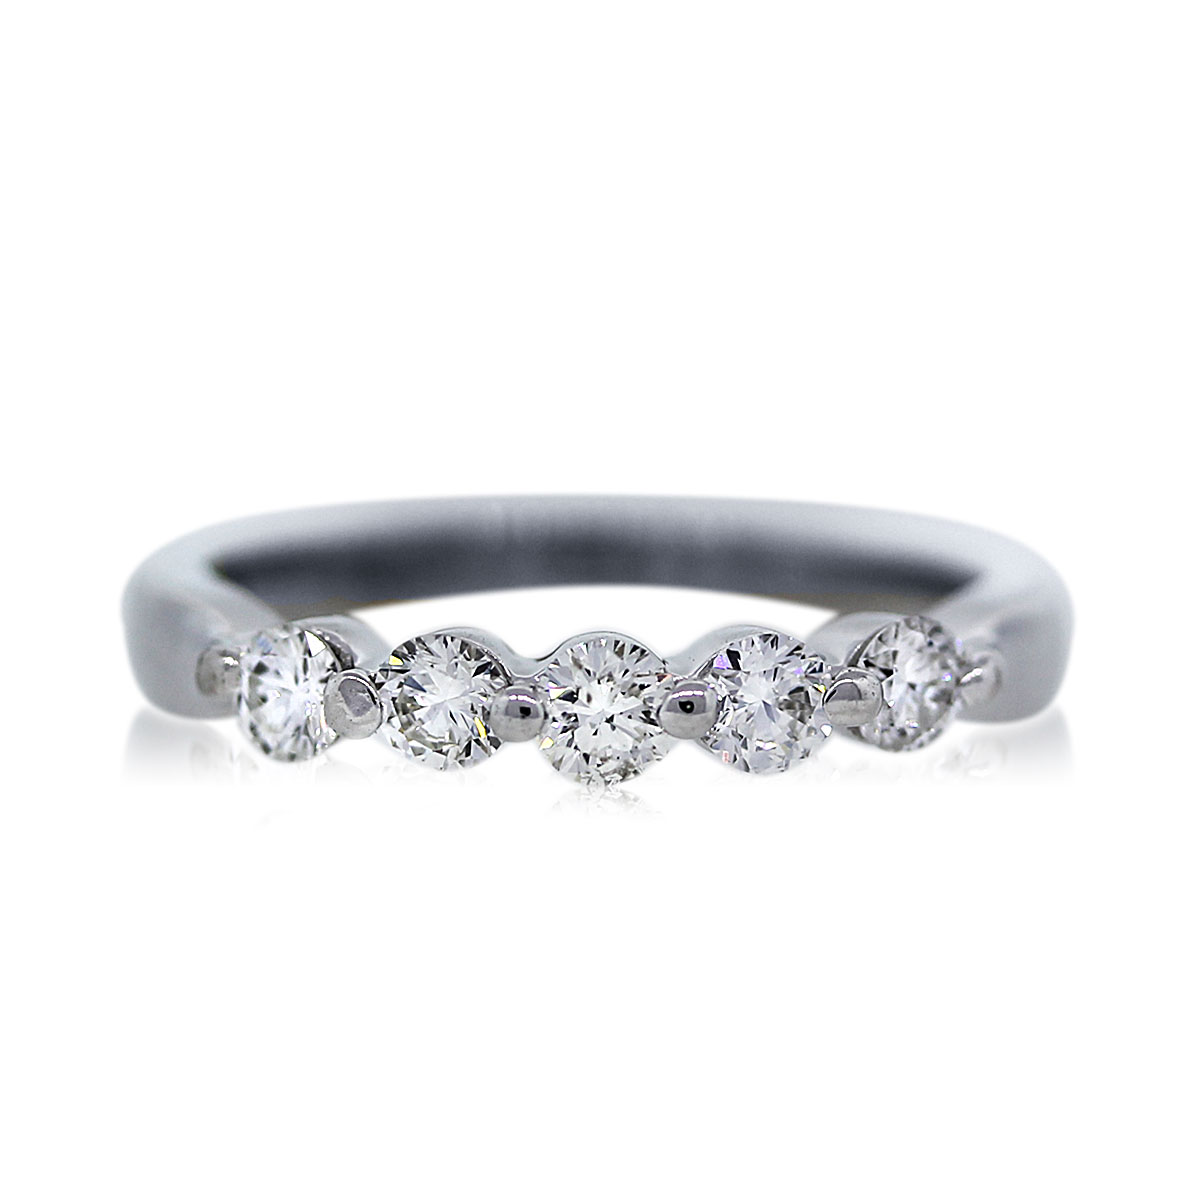 You are Viewing this 18k White Gold Diamond Wedding Band!